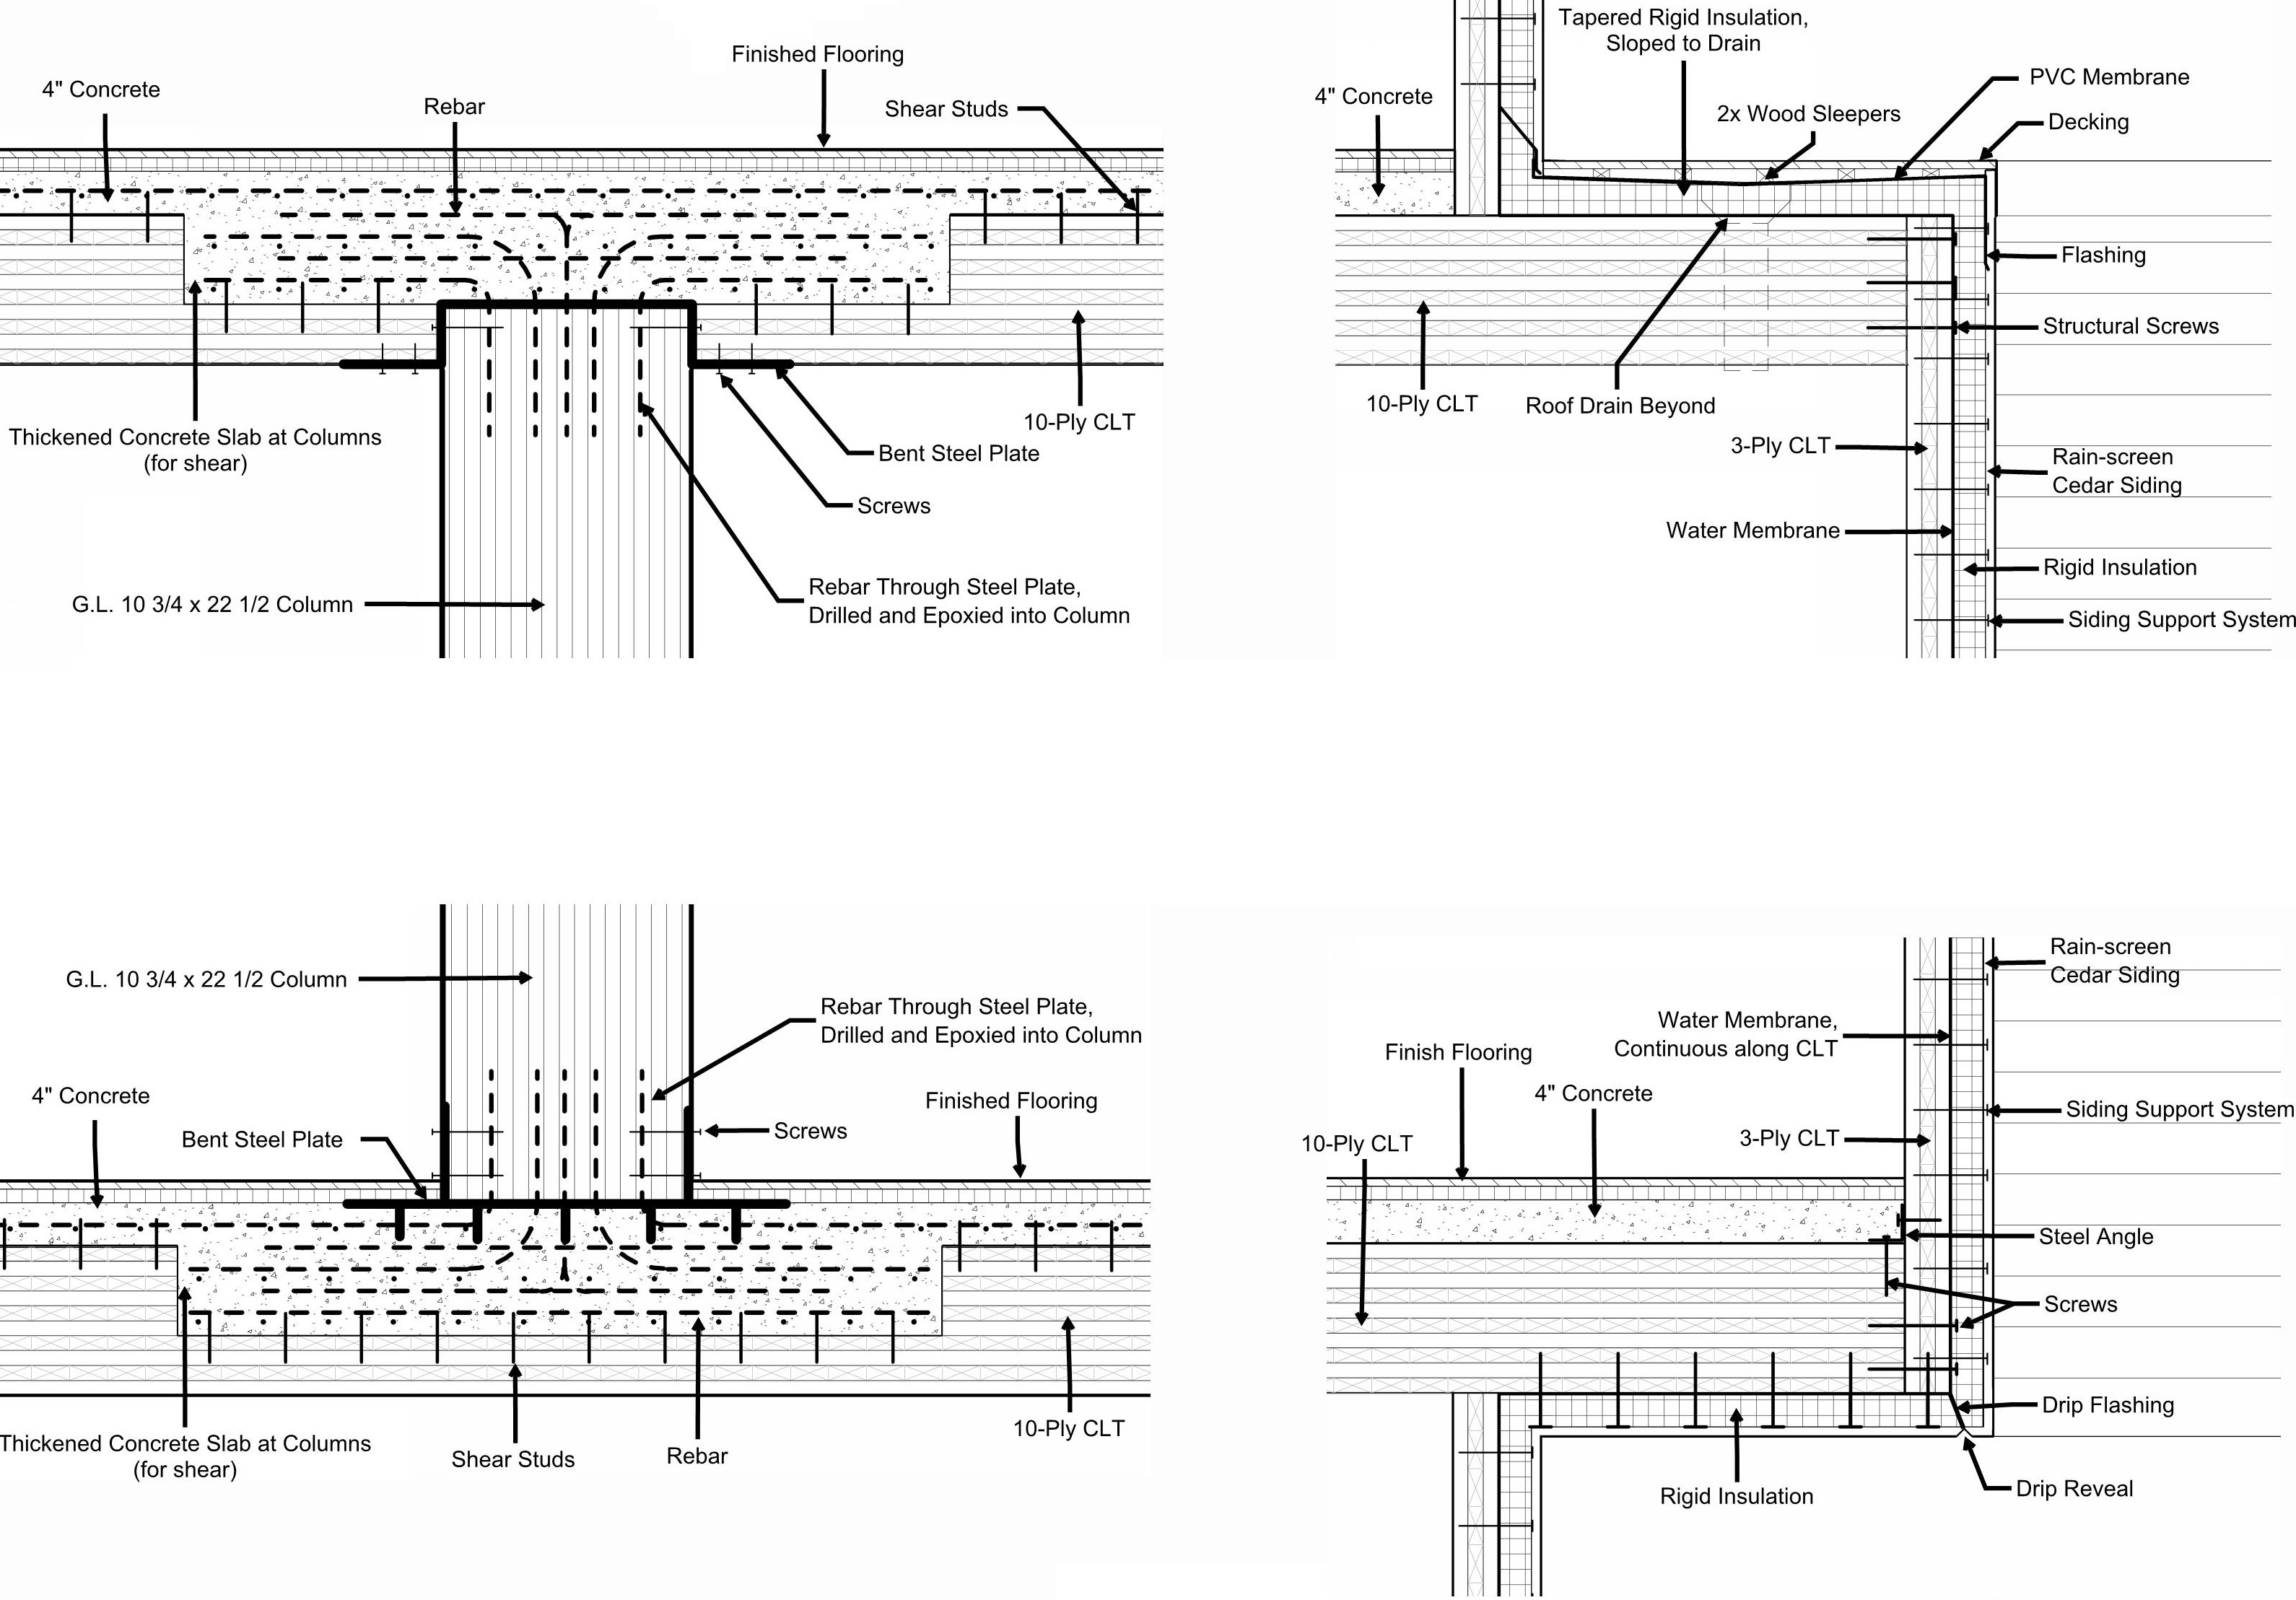 Architectural.assembly details shkwing the structure and exterior facade for a mass timber building